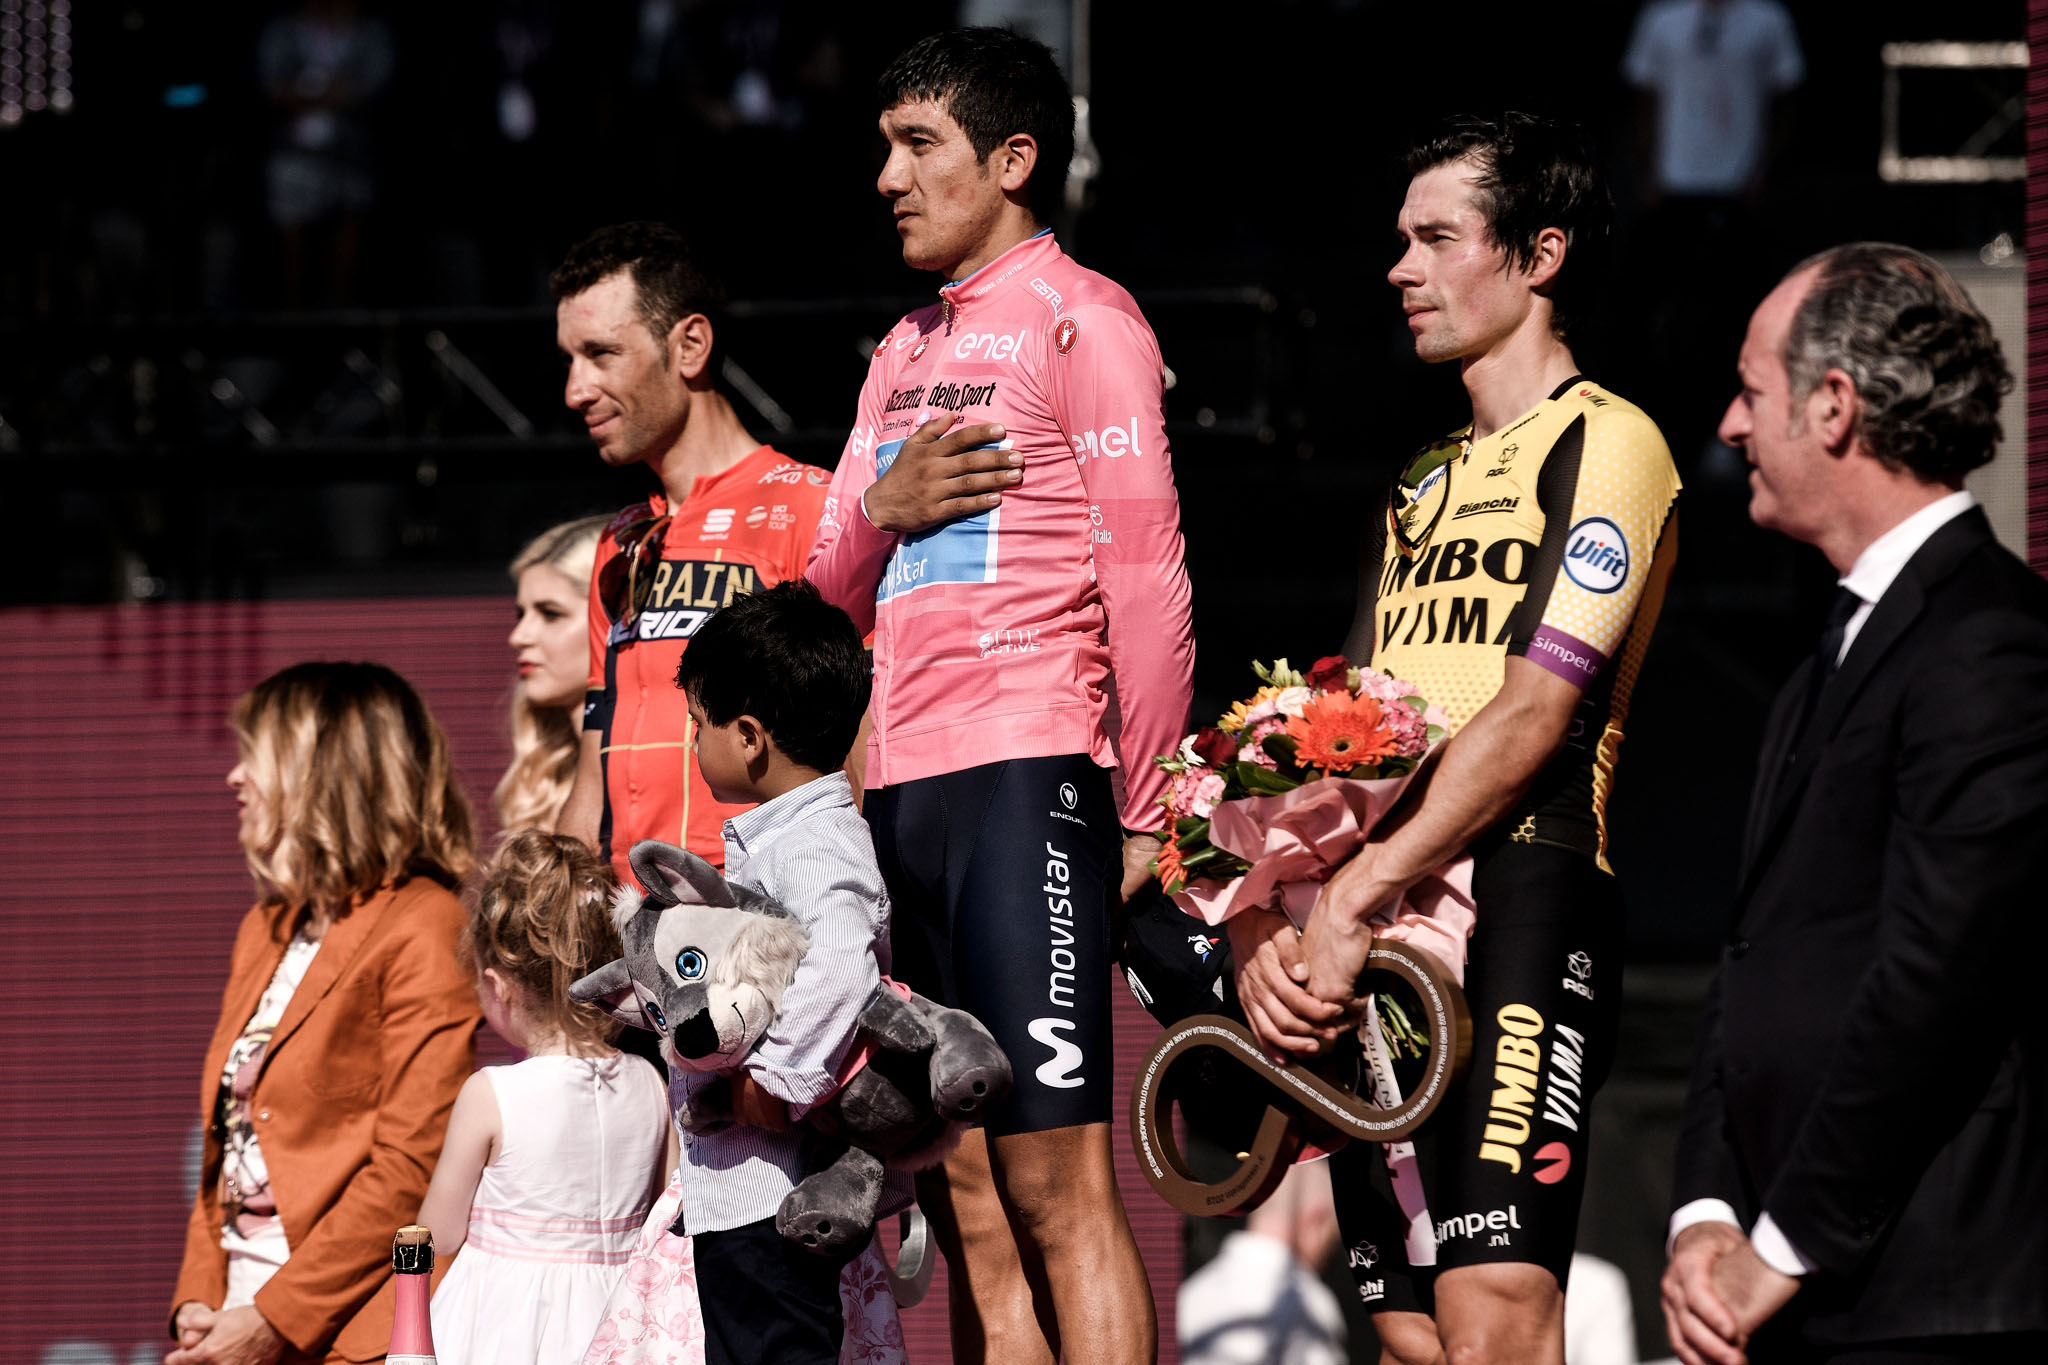 Foto Marco Alpozzi / LaPresse 02 Giugno 2019 Verona (Italia) Sport Ciclismo Giro d'Italia 2019 - edizione 102-  tappa 21 da Verona a Verona - Gara cronometro individuale -  km 17,0 Nella foto: NIBALI Vincenzo(ITA)(BAHRAIN – MERIDA)CARAPAZ Richard (ECU)(MOVISTAR TEAM)ROGLIC Primoz(SLO)(TEAM JUMBO – VISMA)Photo Marco Alpozzi/ LaPresse June 02, 2019  Verona (Italy) Sport Cycling Giro d'Italia 2019 - 102th edition -  stage 21 from Verona to Verona to Individual Time Trial In the pic: NIBALI Vincenzo(ITA)(BAHRAIN – MERIDA)CARAPAZ Richard (ECU)(MOVISTAR TEAM)ROGLIC Primoz(SLO)(TEAM JUMBO – VISMA)